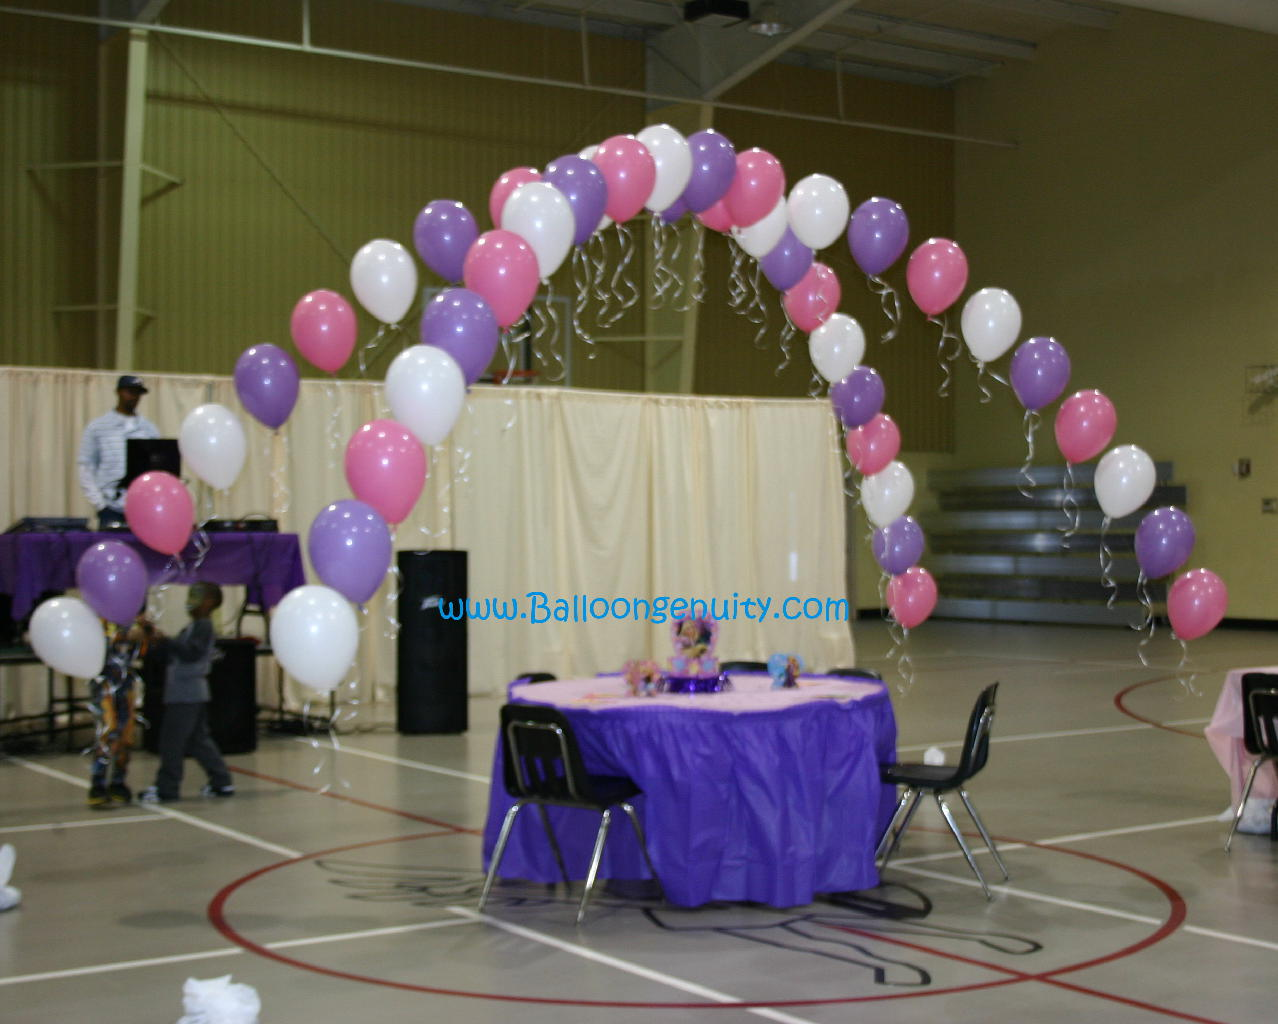 Balloon head table centerpieces invitations pictures